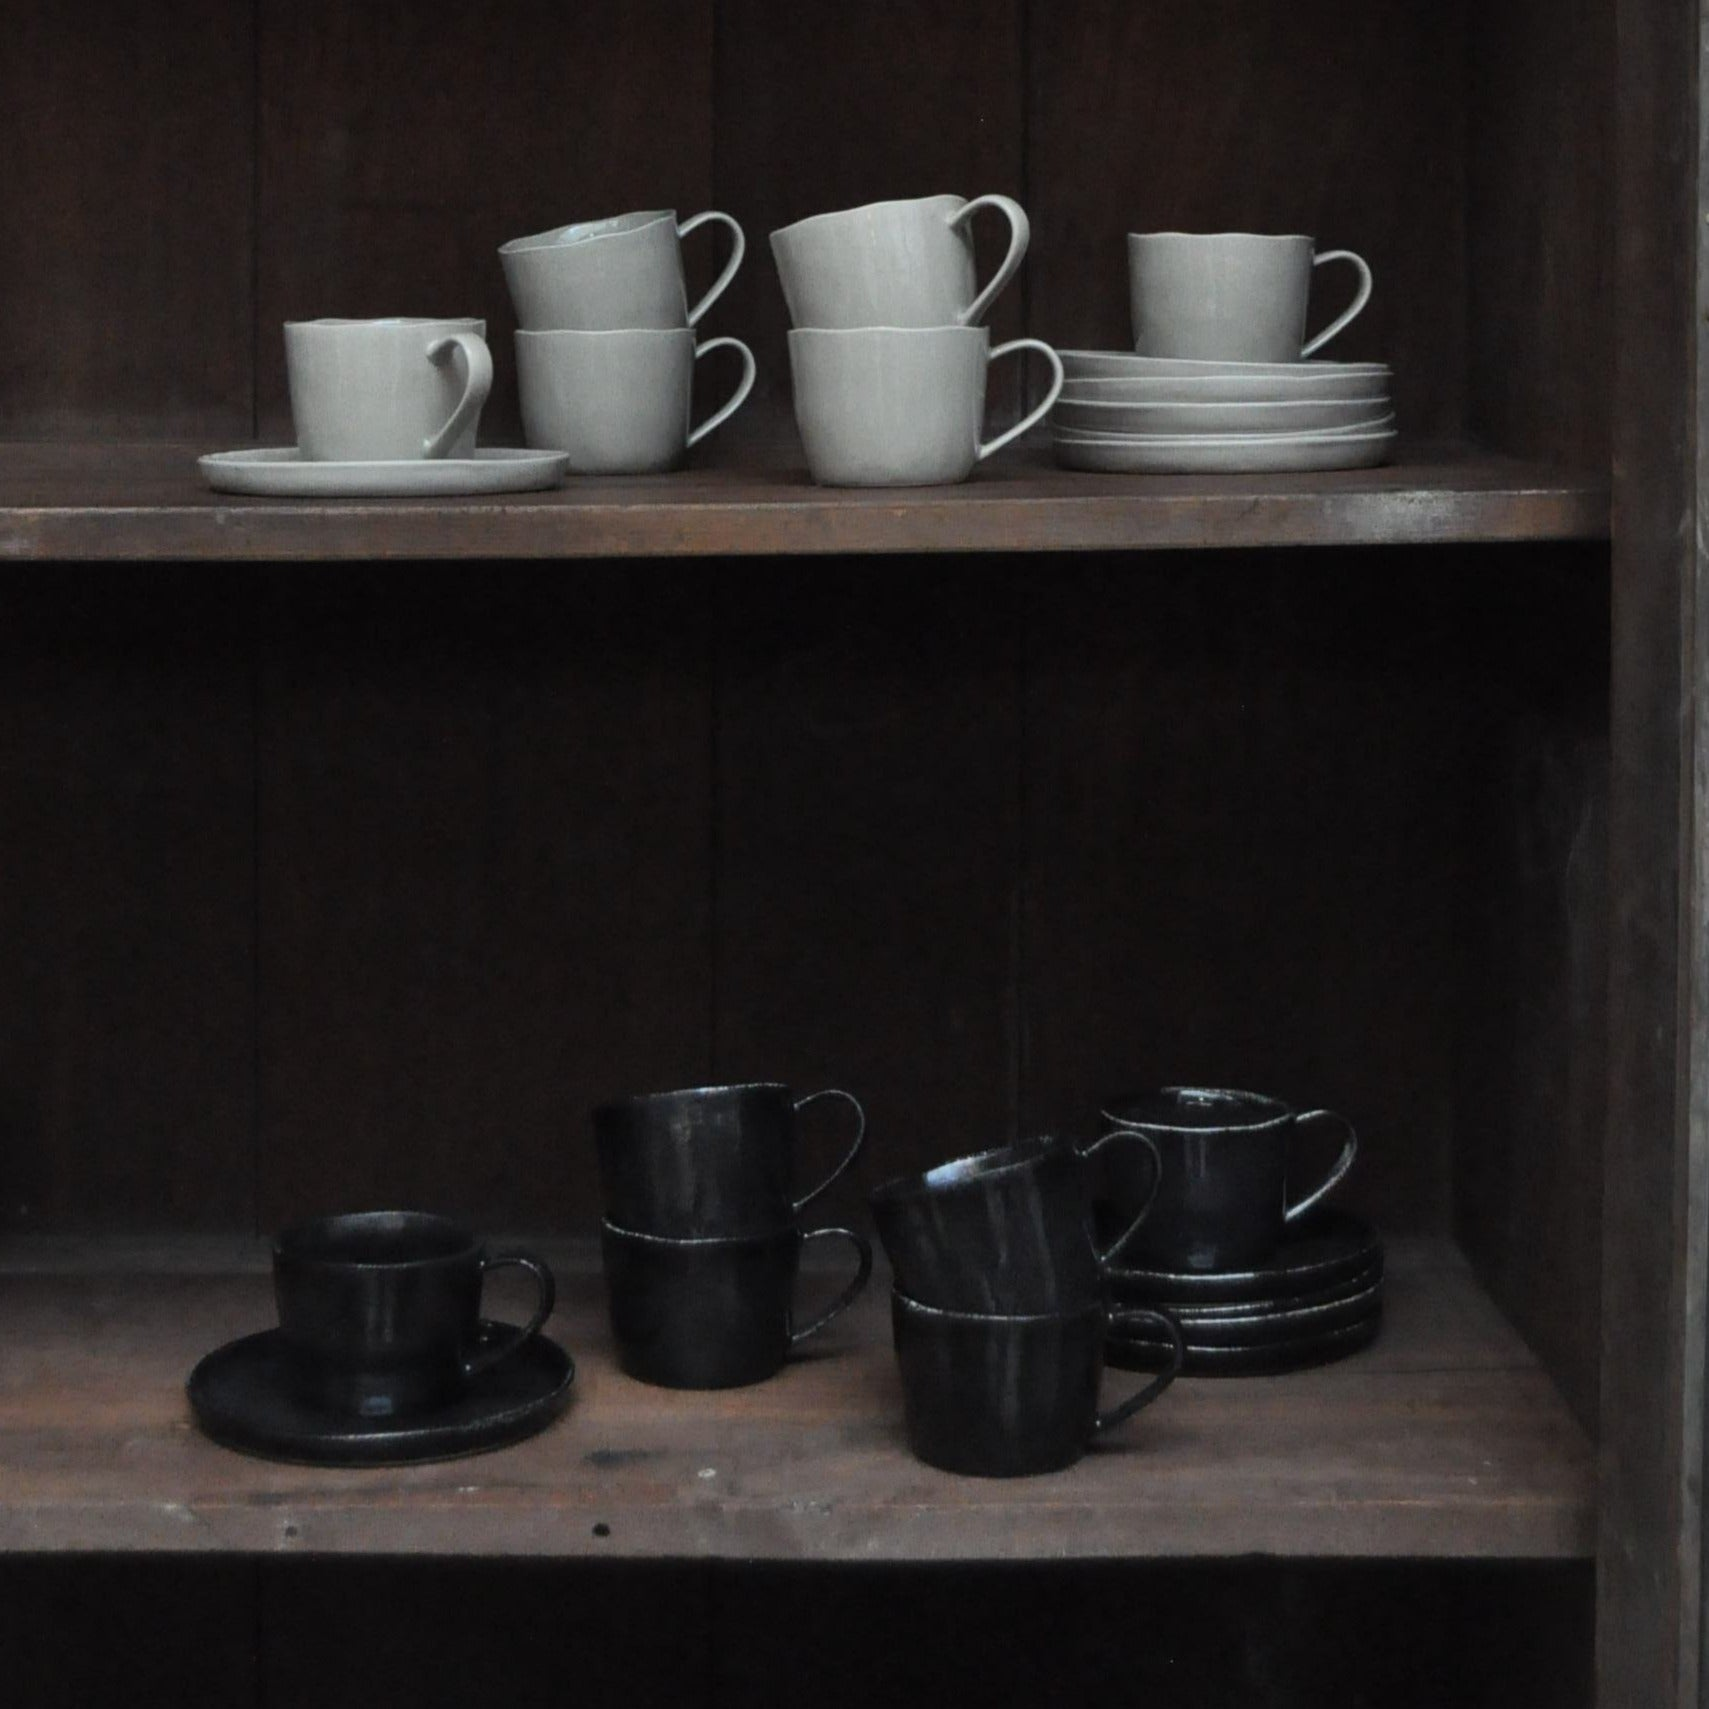 Ela tea set of 6 - porcelain - black